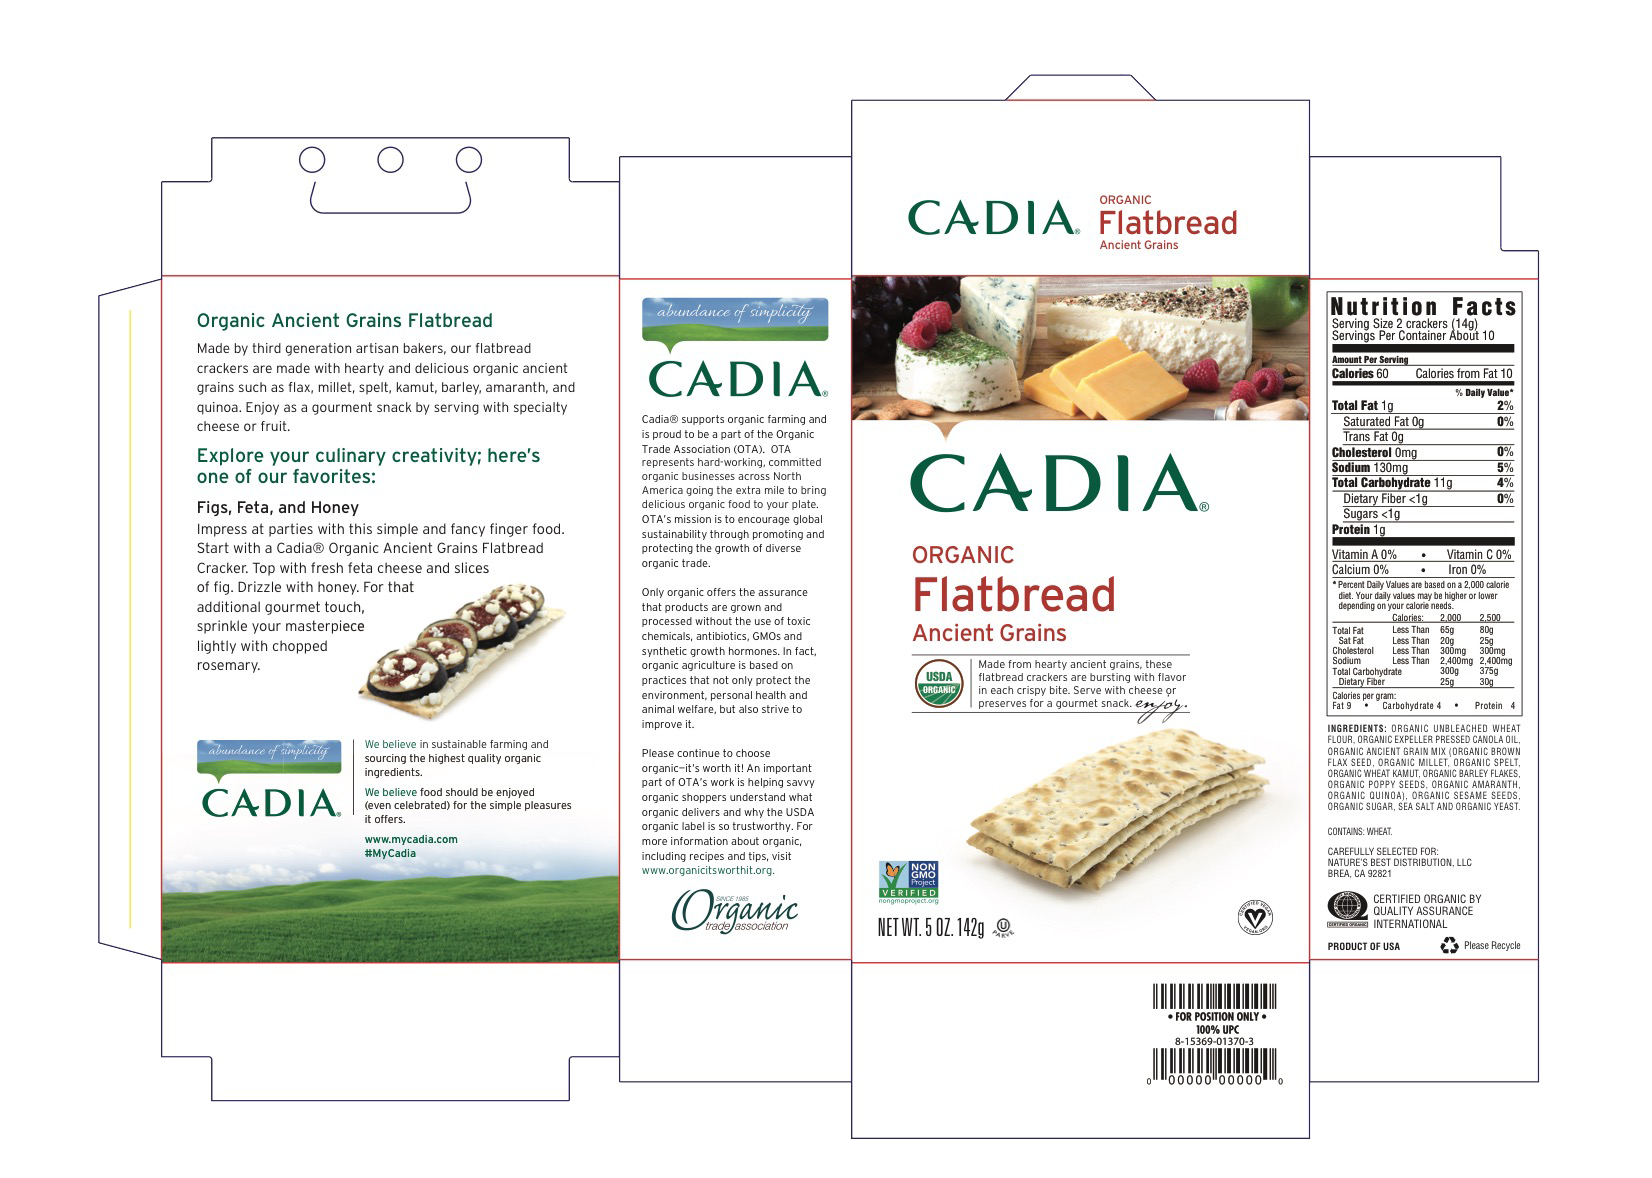 Cadia_Flatbreads_AncientGrains5 oz-CS6_F.png